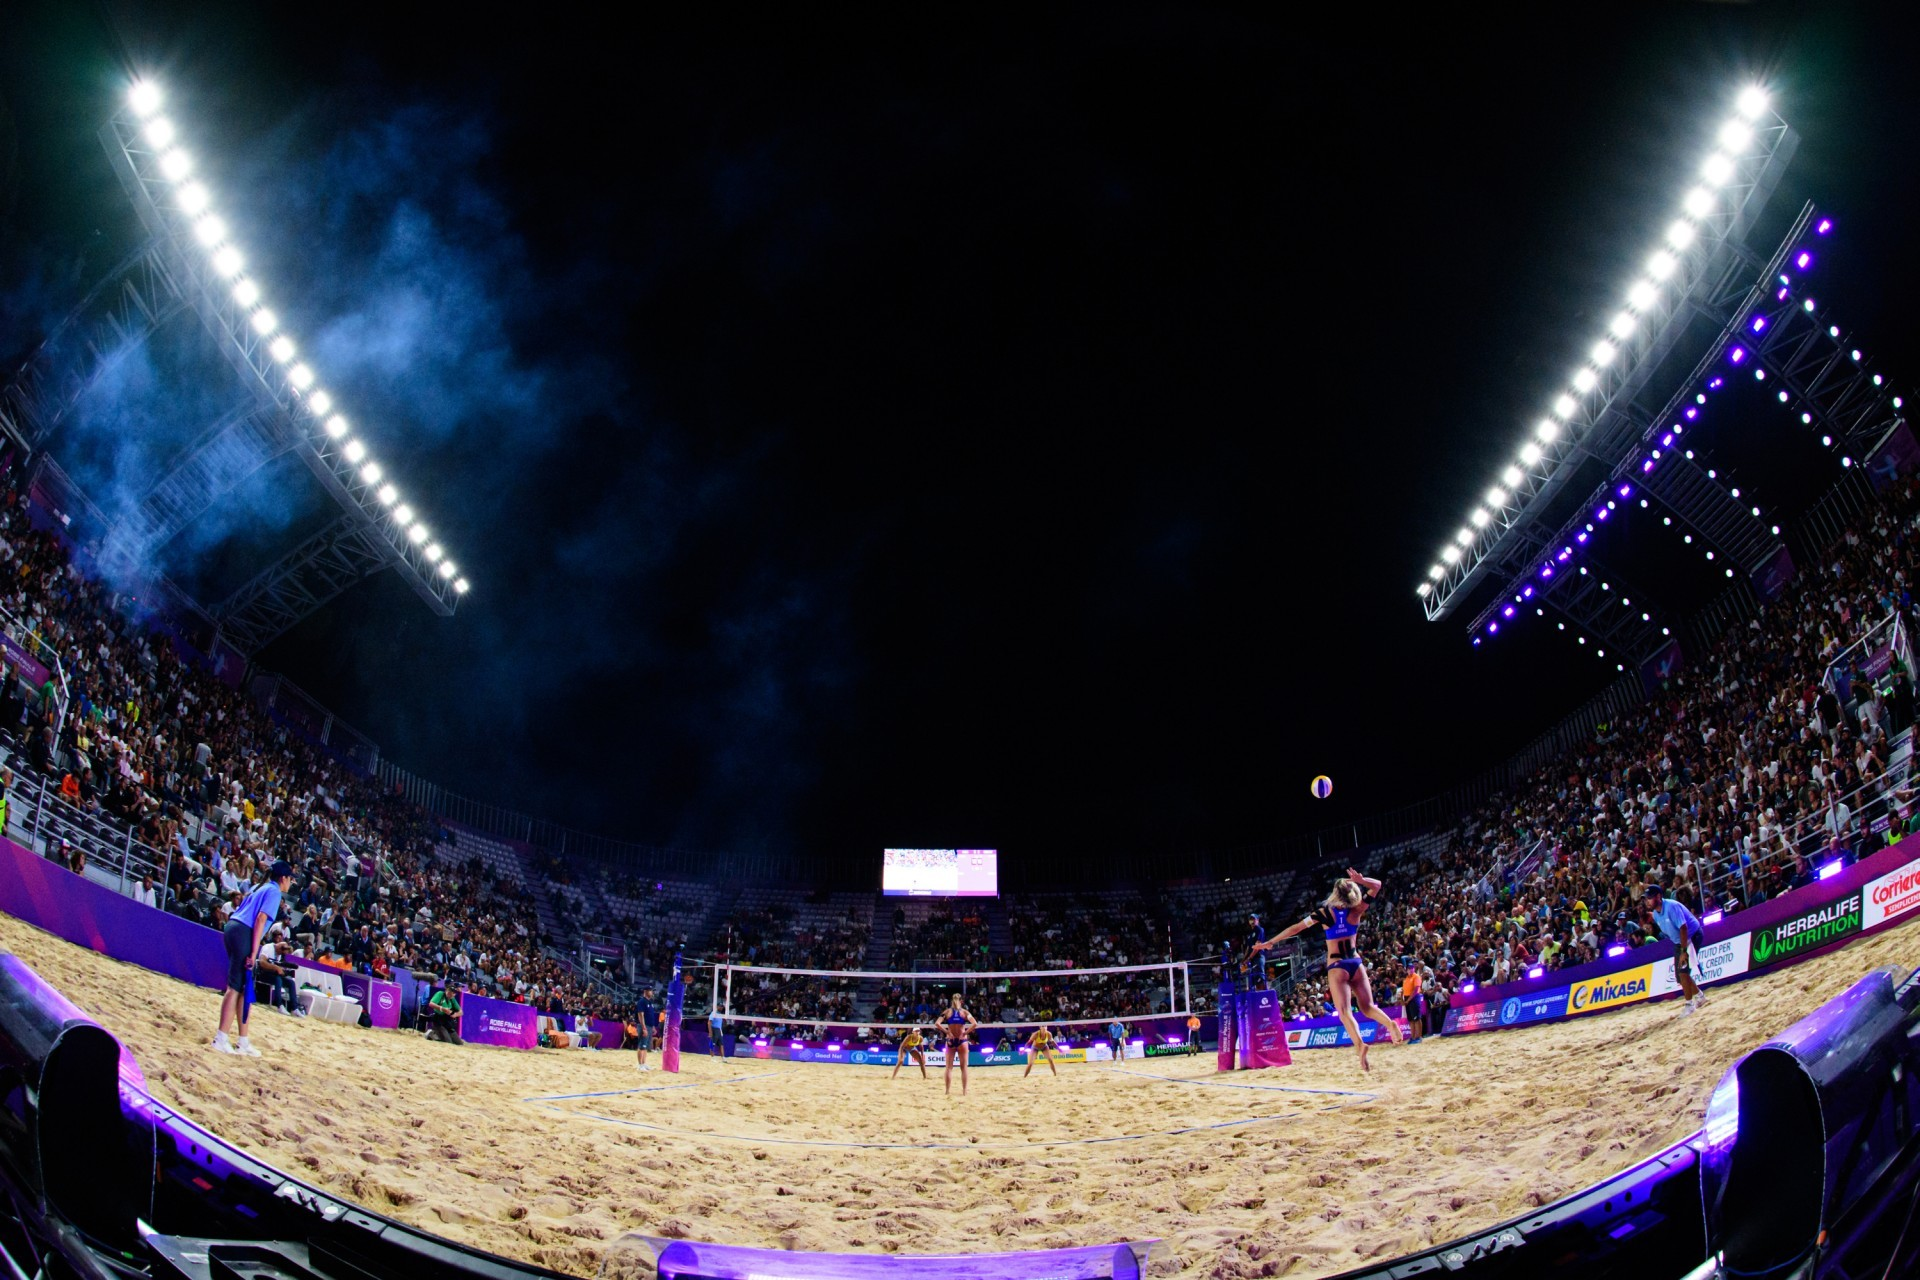 Rome hosted the World Tour Finals last year